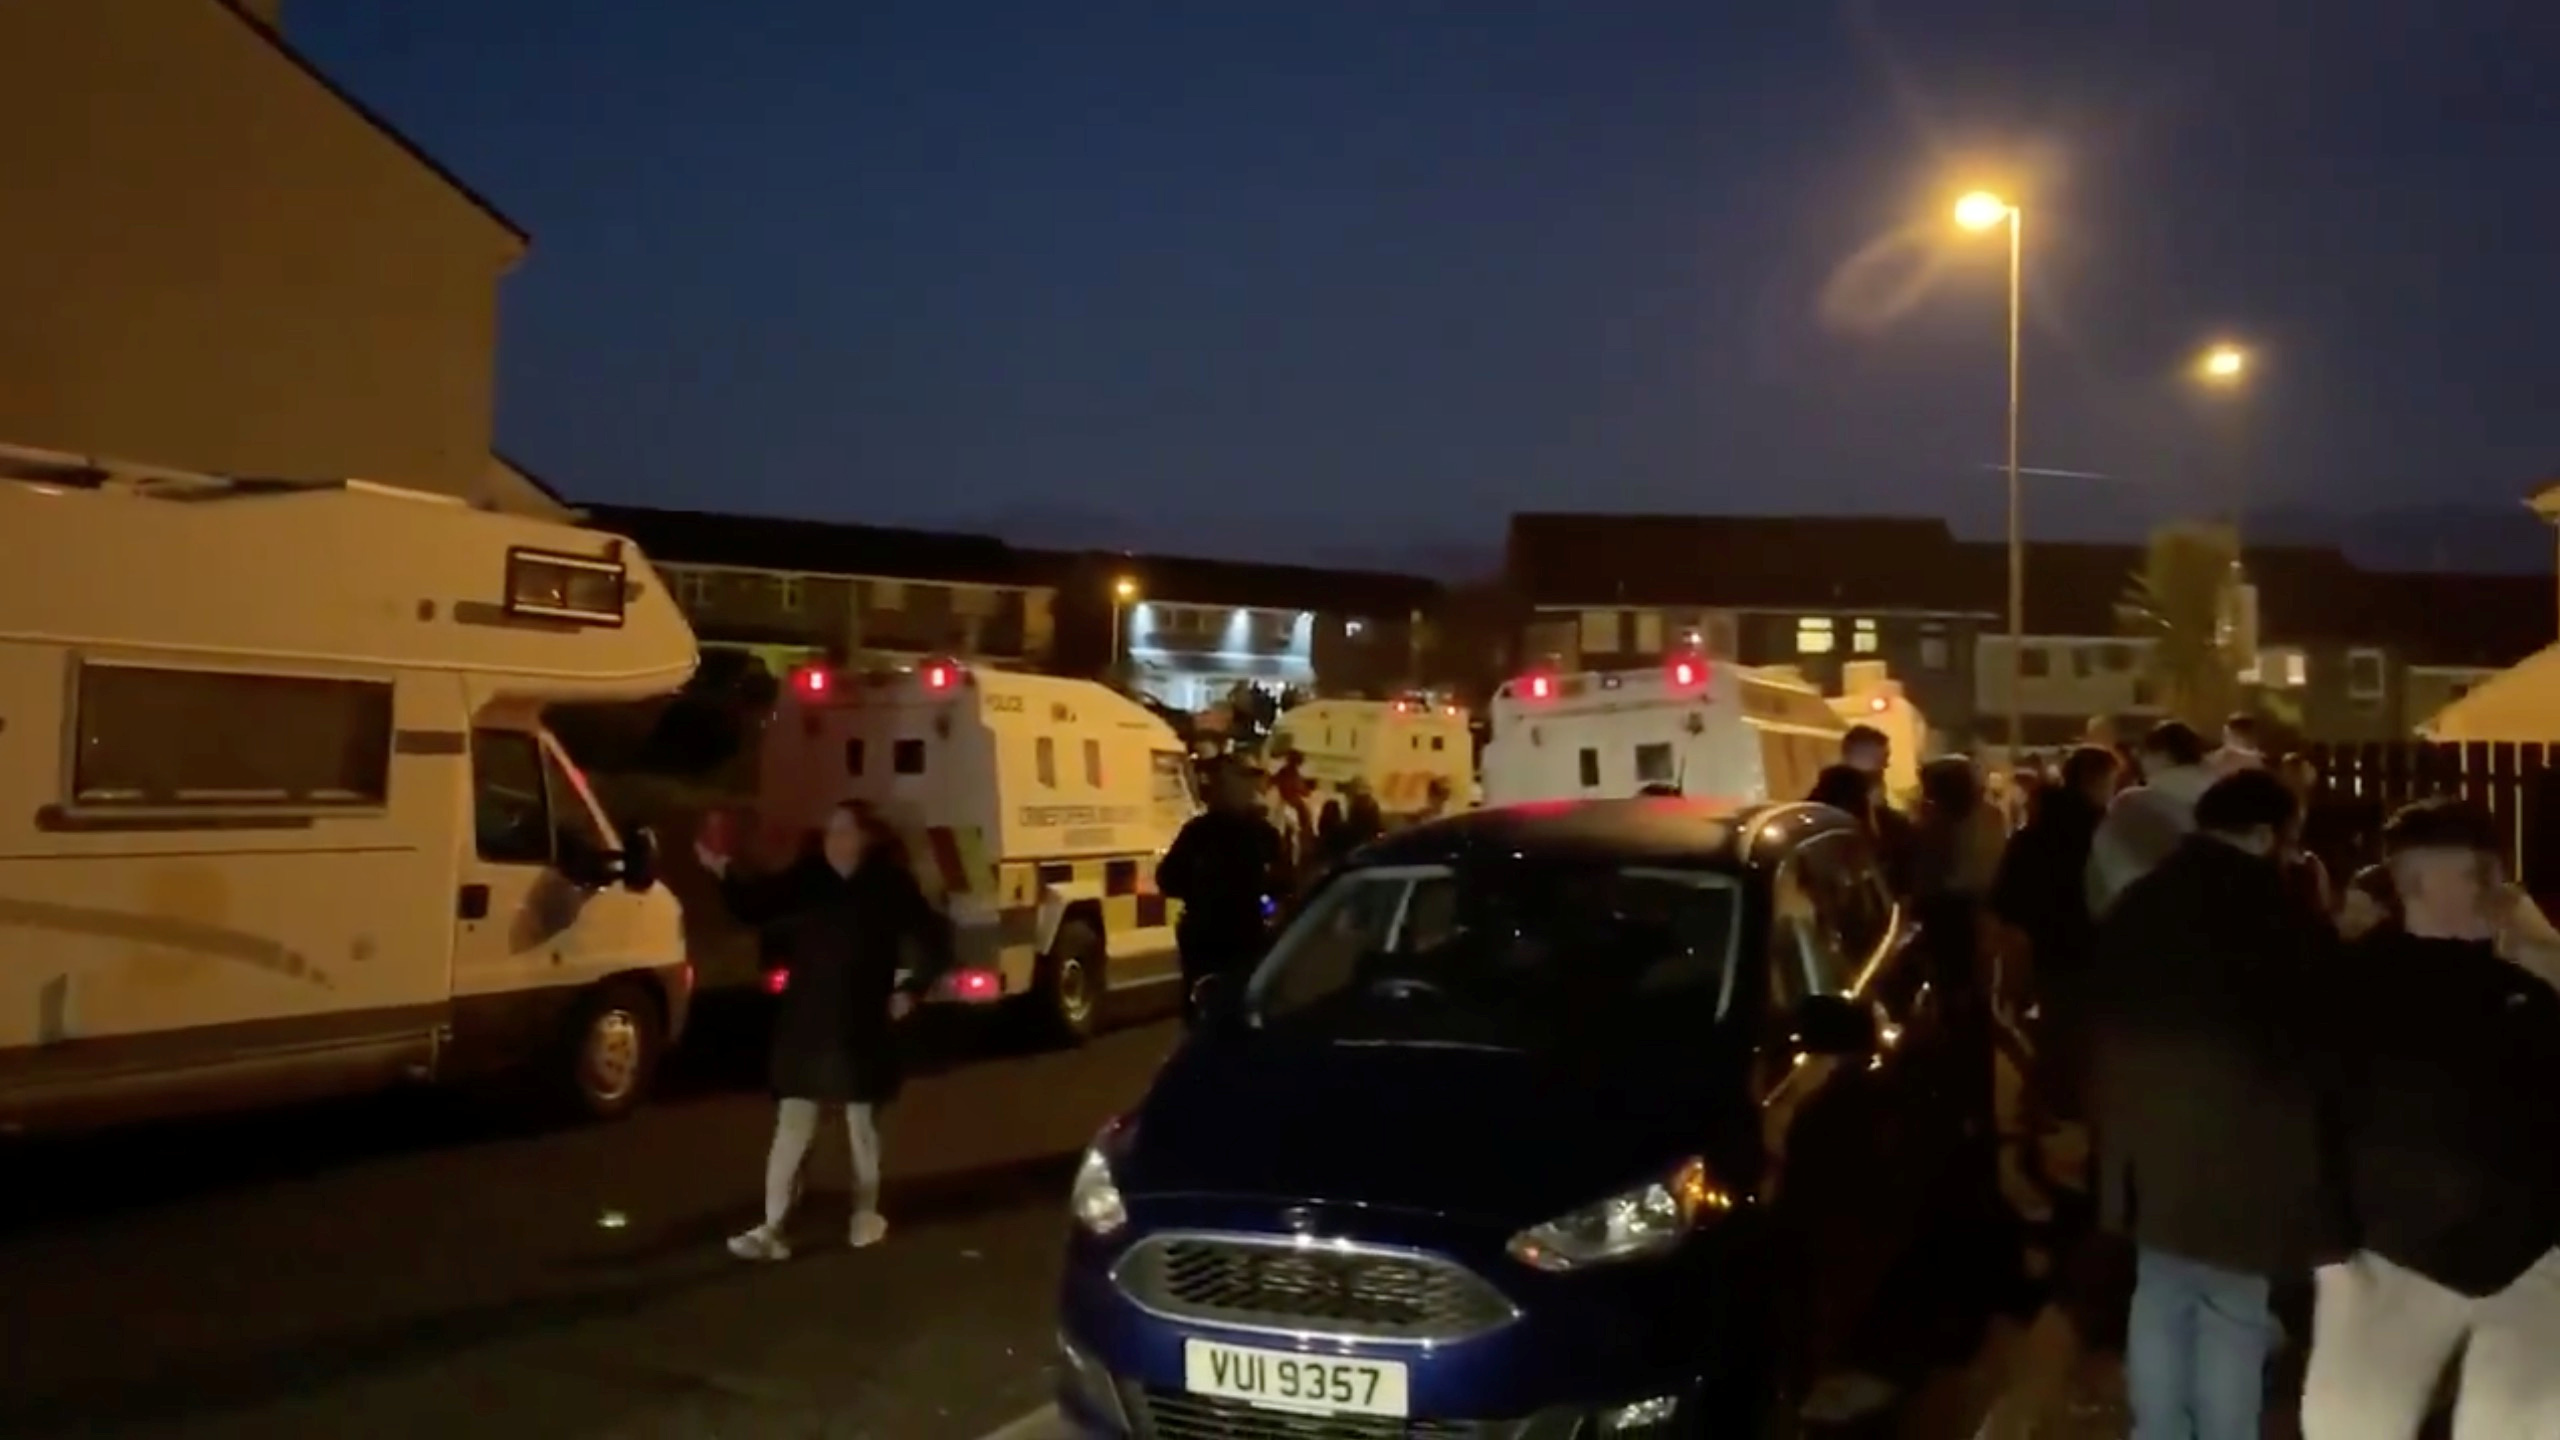 Emergency vehicles arrive at a scene of a riot in Londonderry, Northern Ireland April 18, 2019, in this still image taken from a video from social media. Leona O'Neill via REUTERS